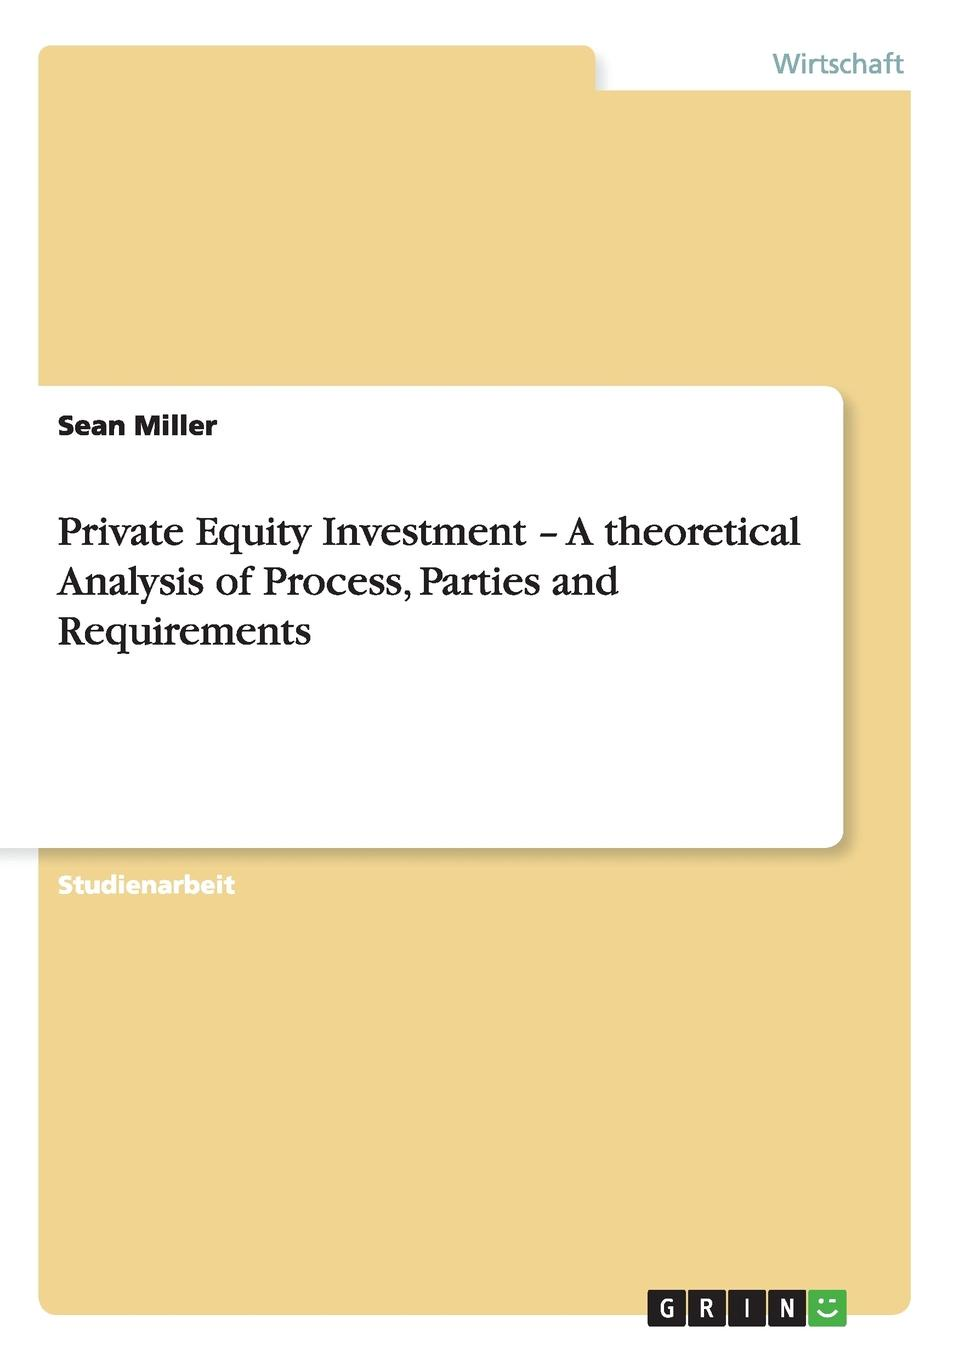 Sean Miller Private Equity Investment - A theoretical Analysis of Process, Parties and Requirements